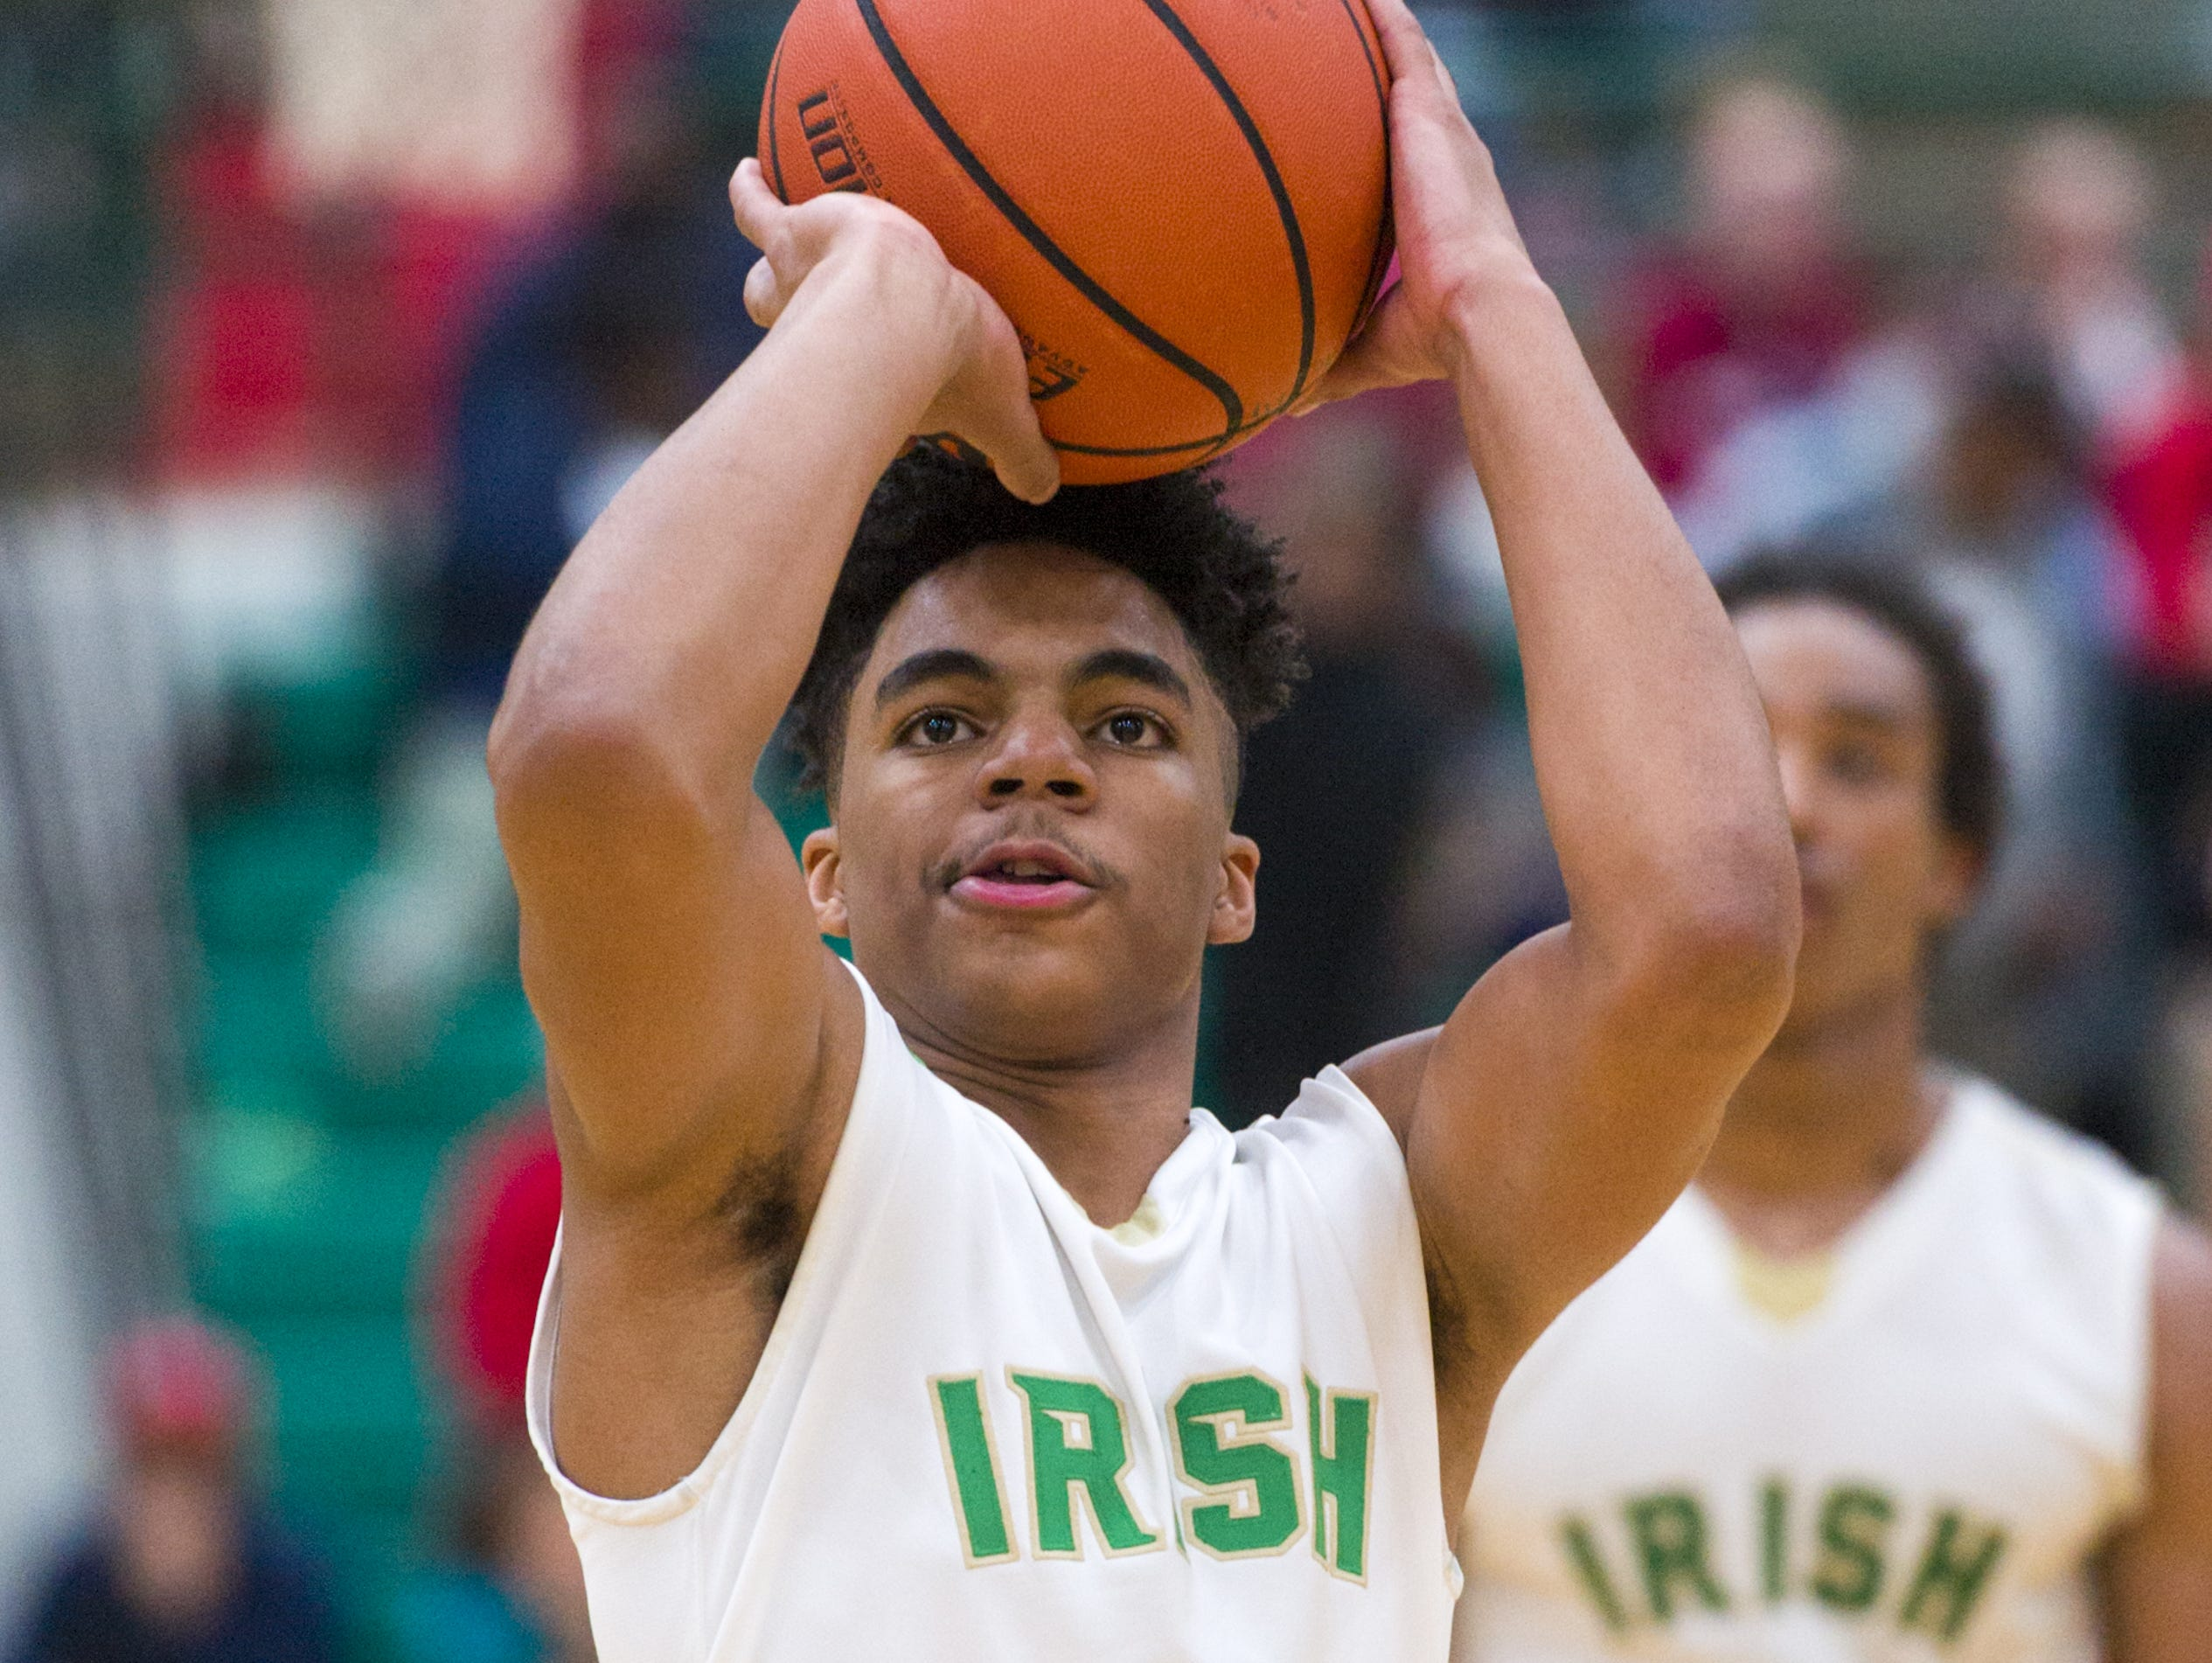 Cathedral High School sophomore James Franklin (0) shoots a free throw during the second half of the Indianapolis City Boy's Basketball Tournament championship game Monday, Jan. 23, 2017, at Arsenal Tech High School. Cathedral won 91-67.